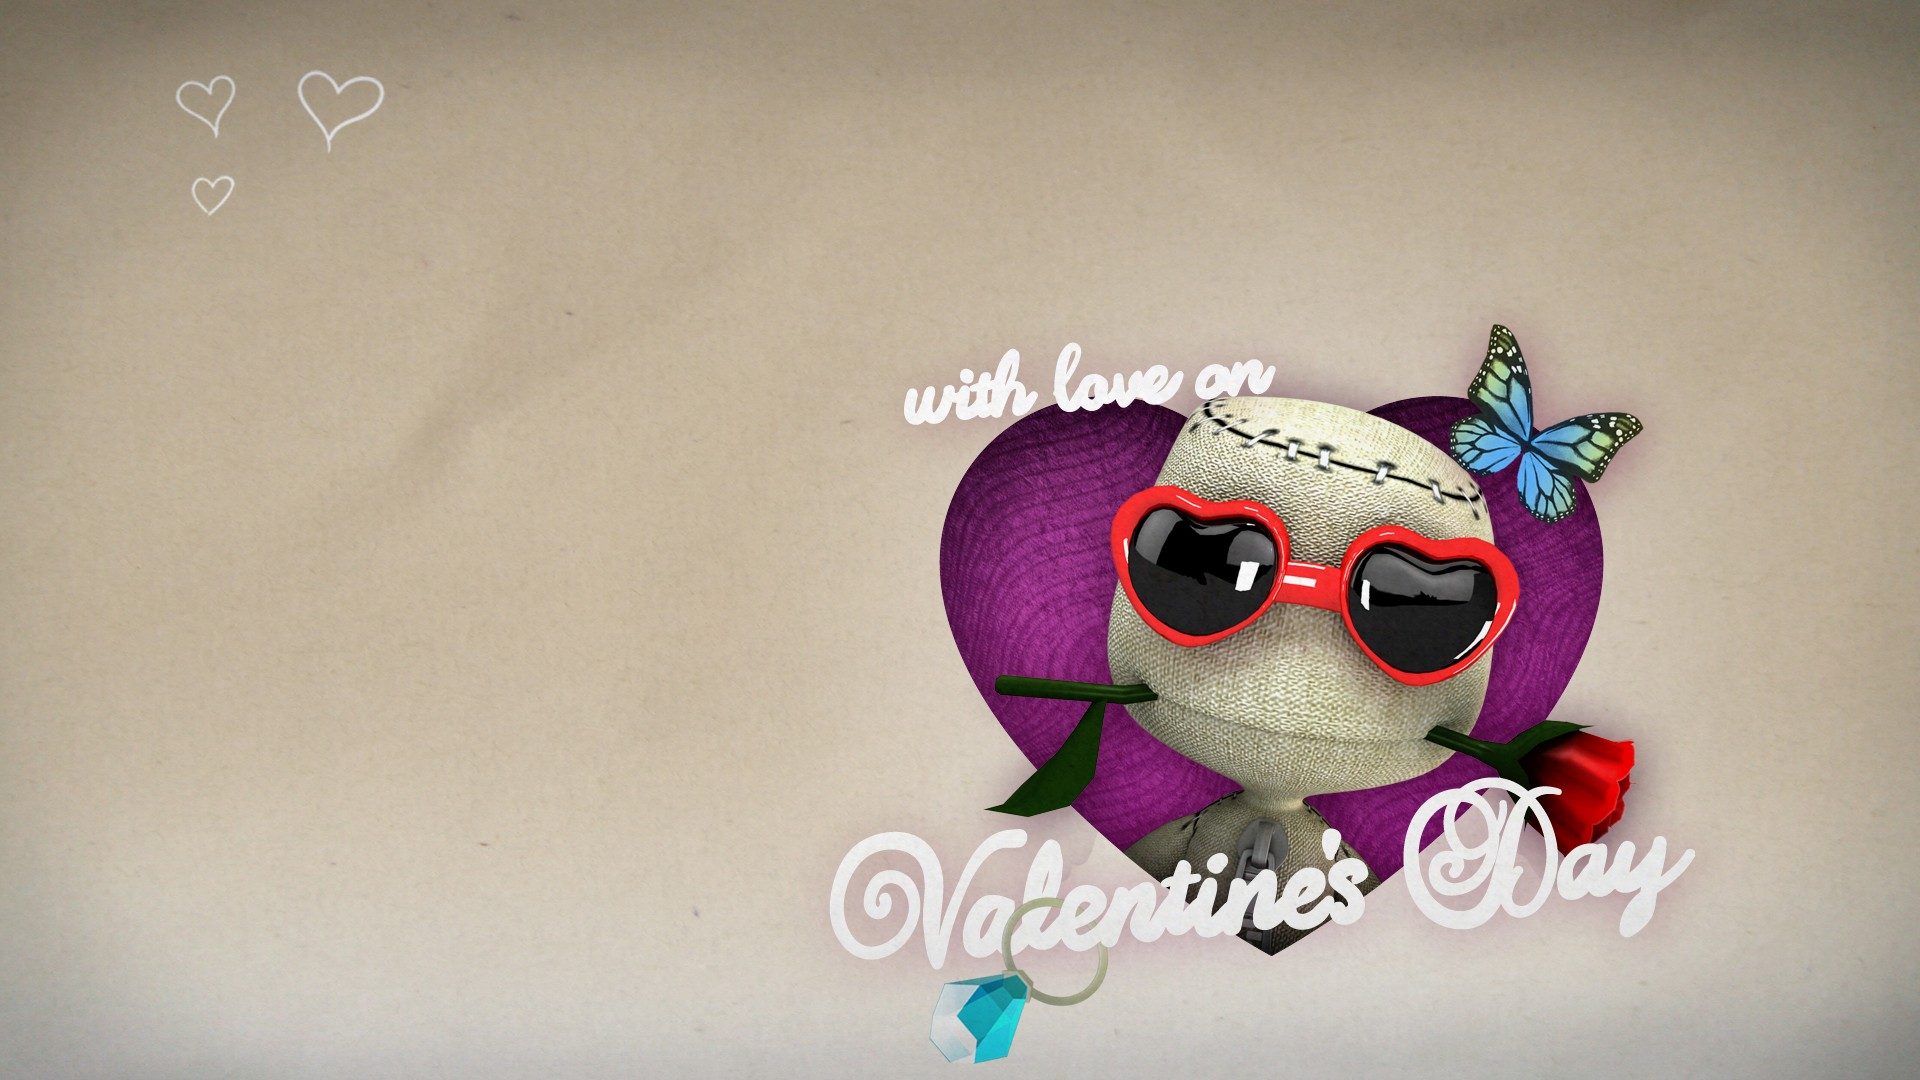 Funny Valentines Day Pictures HD Wallpaper Funny Valentines Day 1920x1080